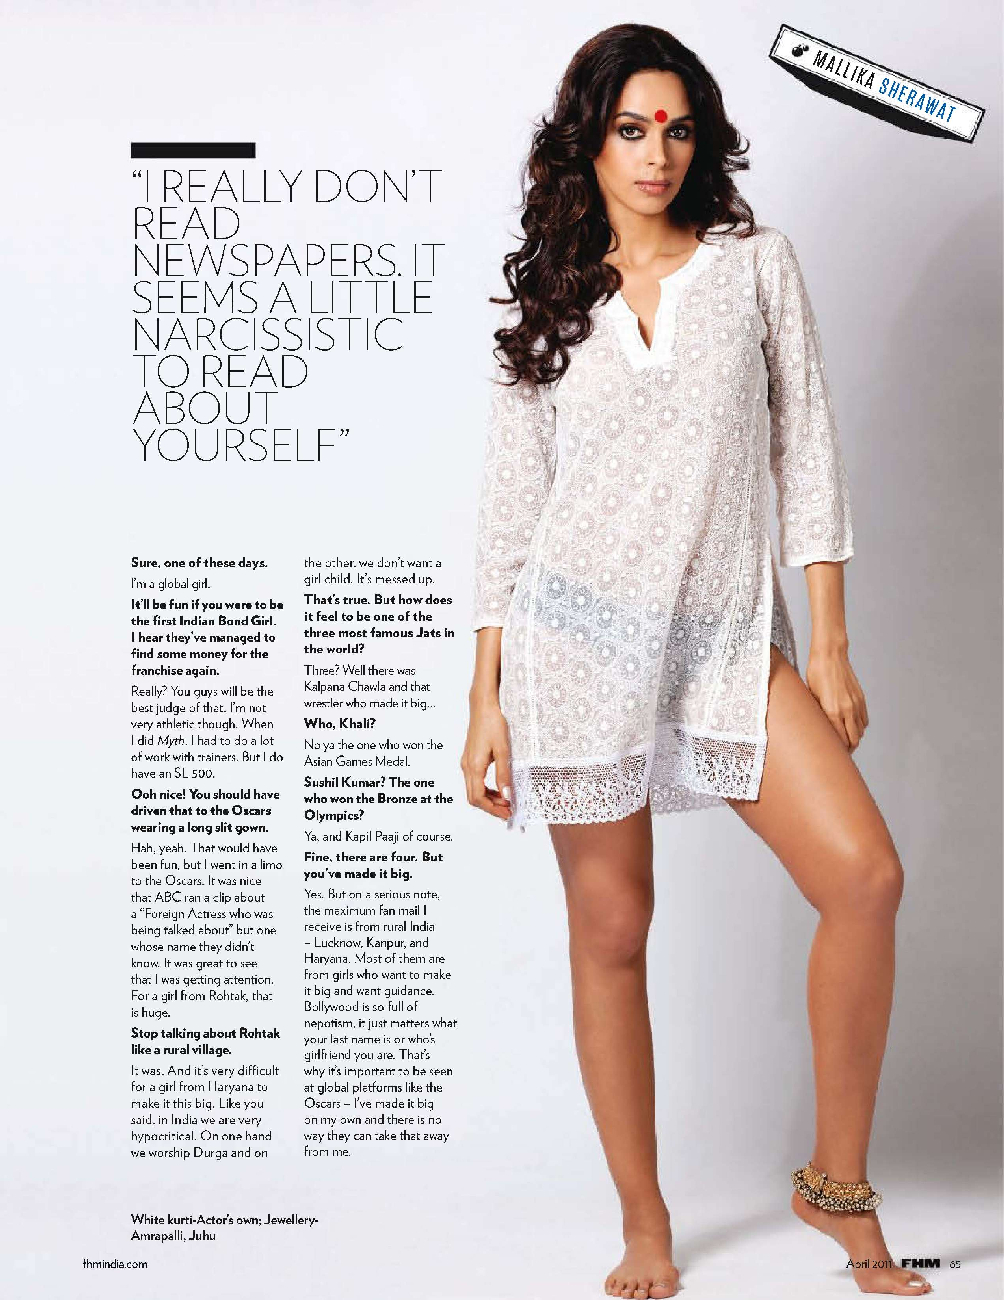 Mallika-Sherawat-Hot-On-FHM-India-April-2011-Stills-HQ-9